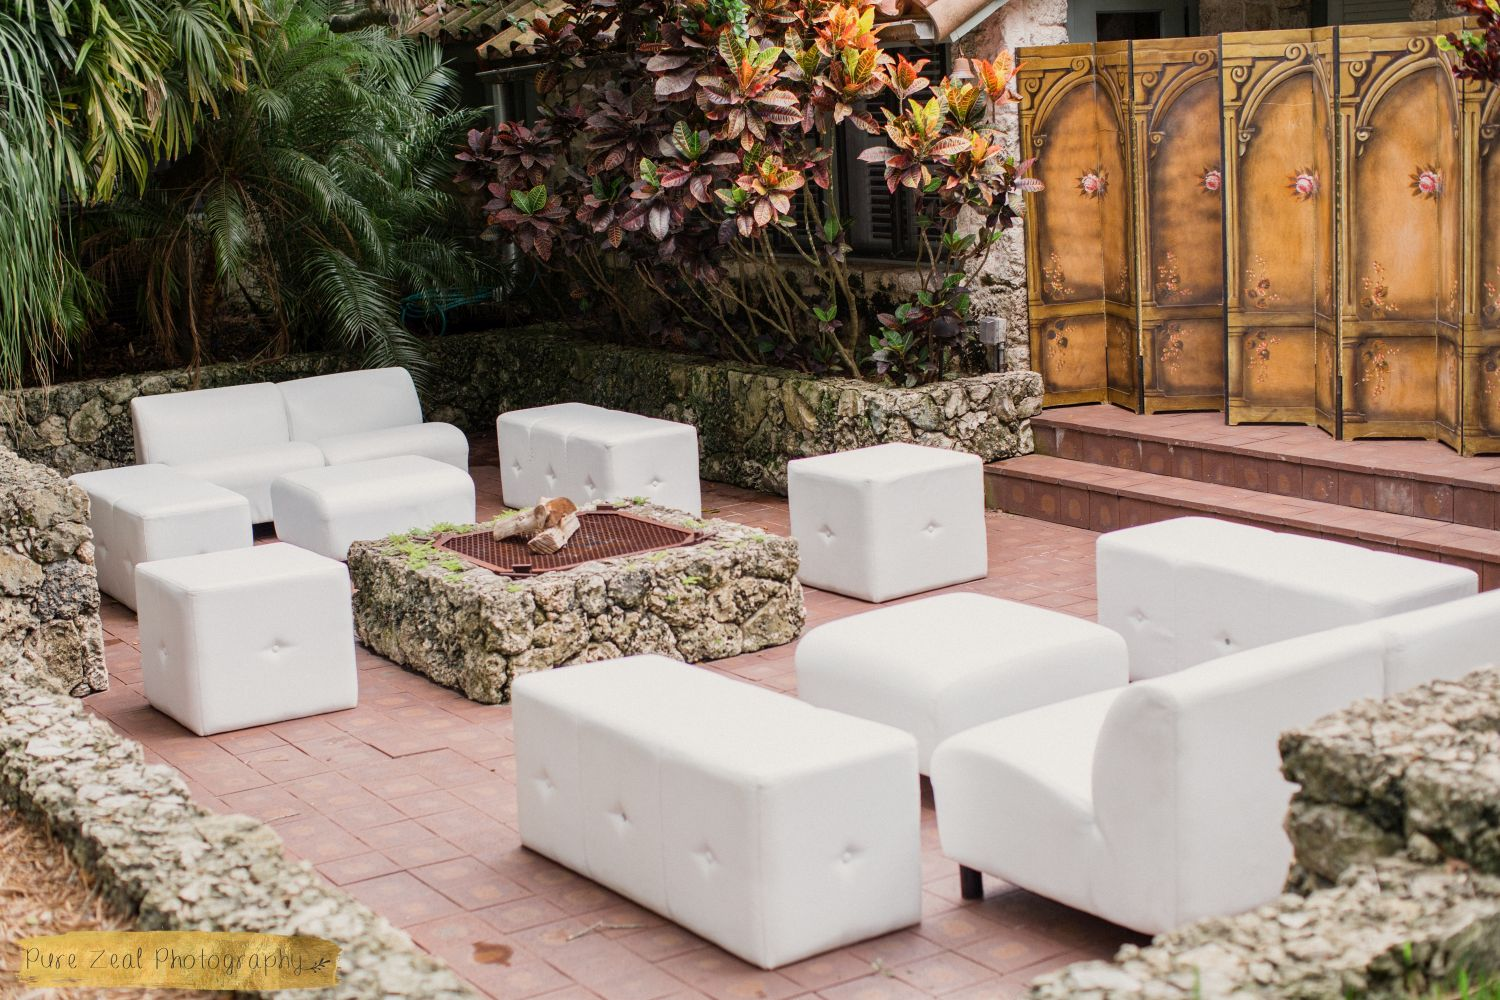 Wedding Lounge Furniture Rental White Lounge Furniture Wedding Rentals Wedding Special Event